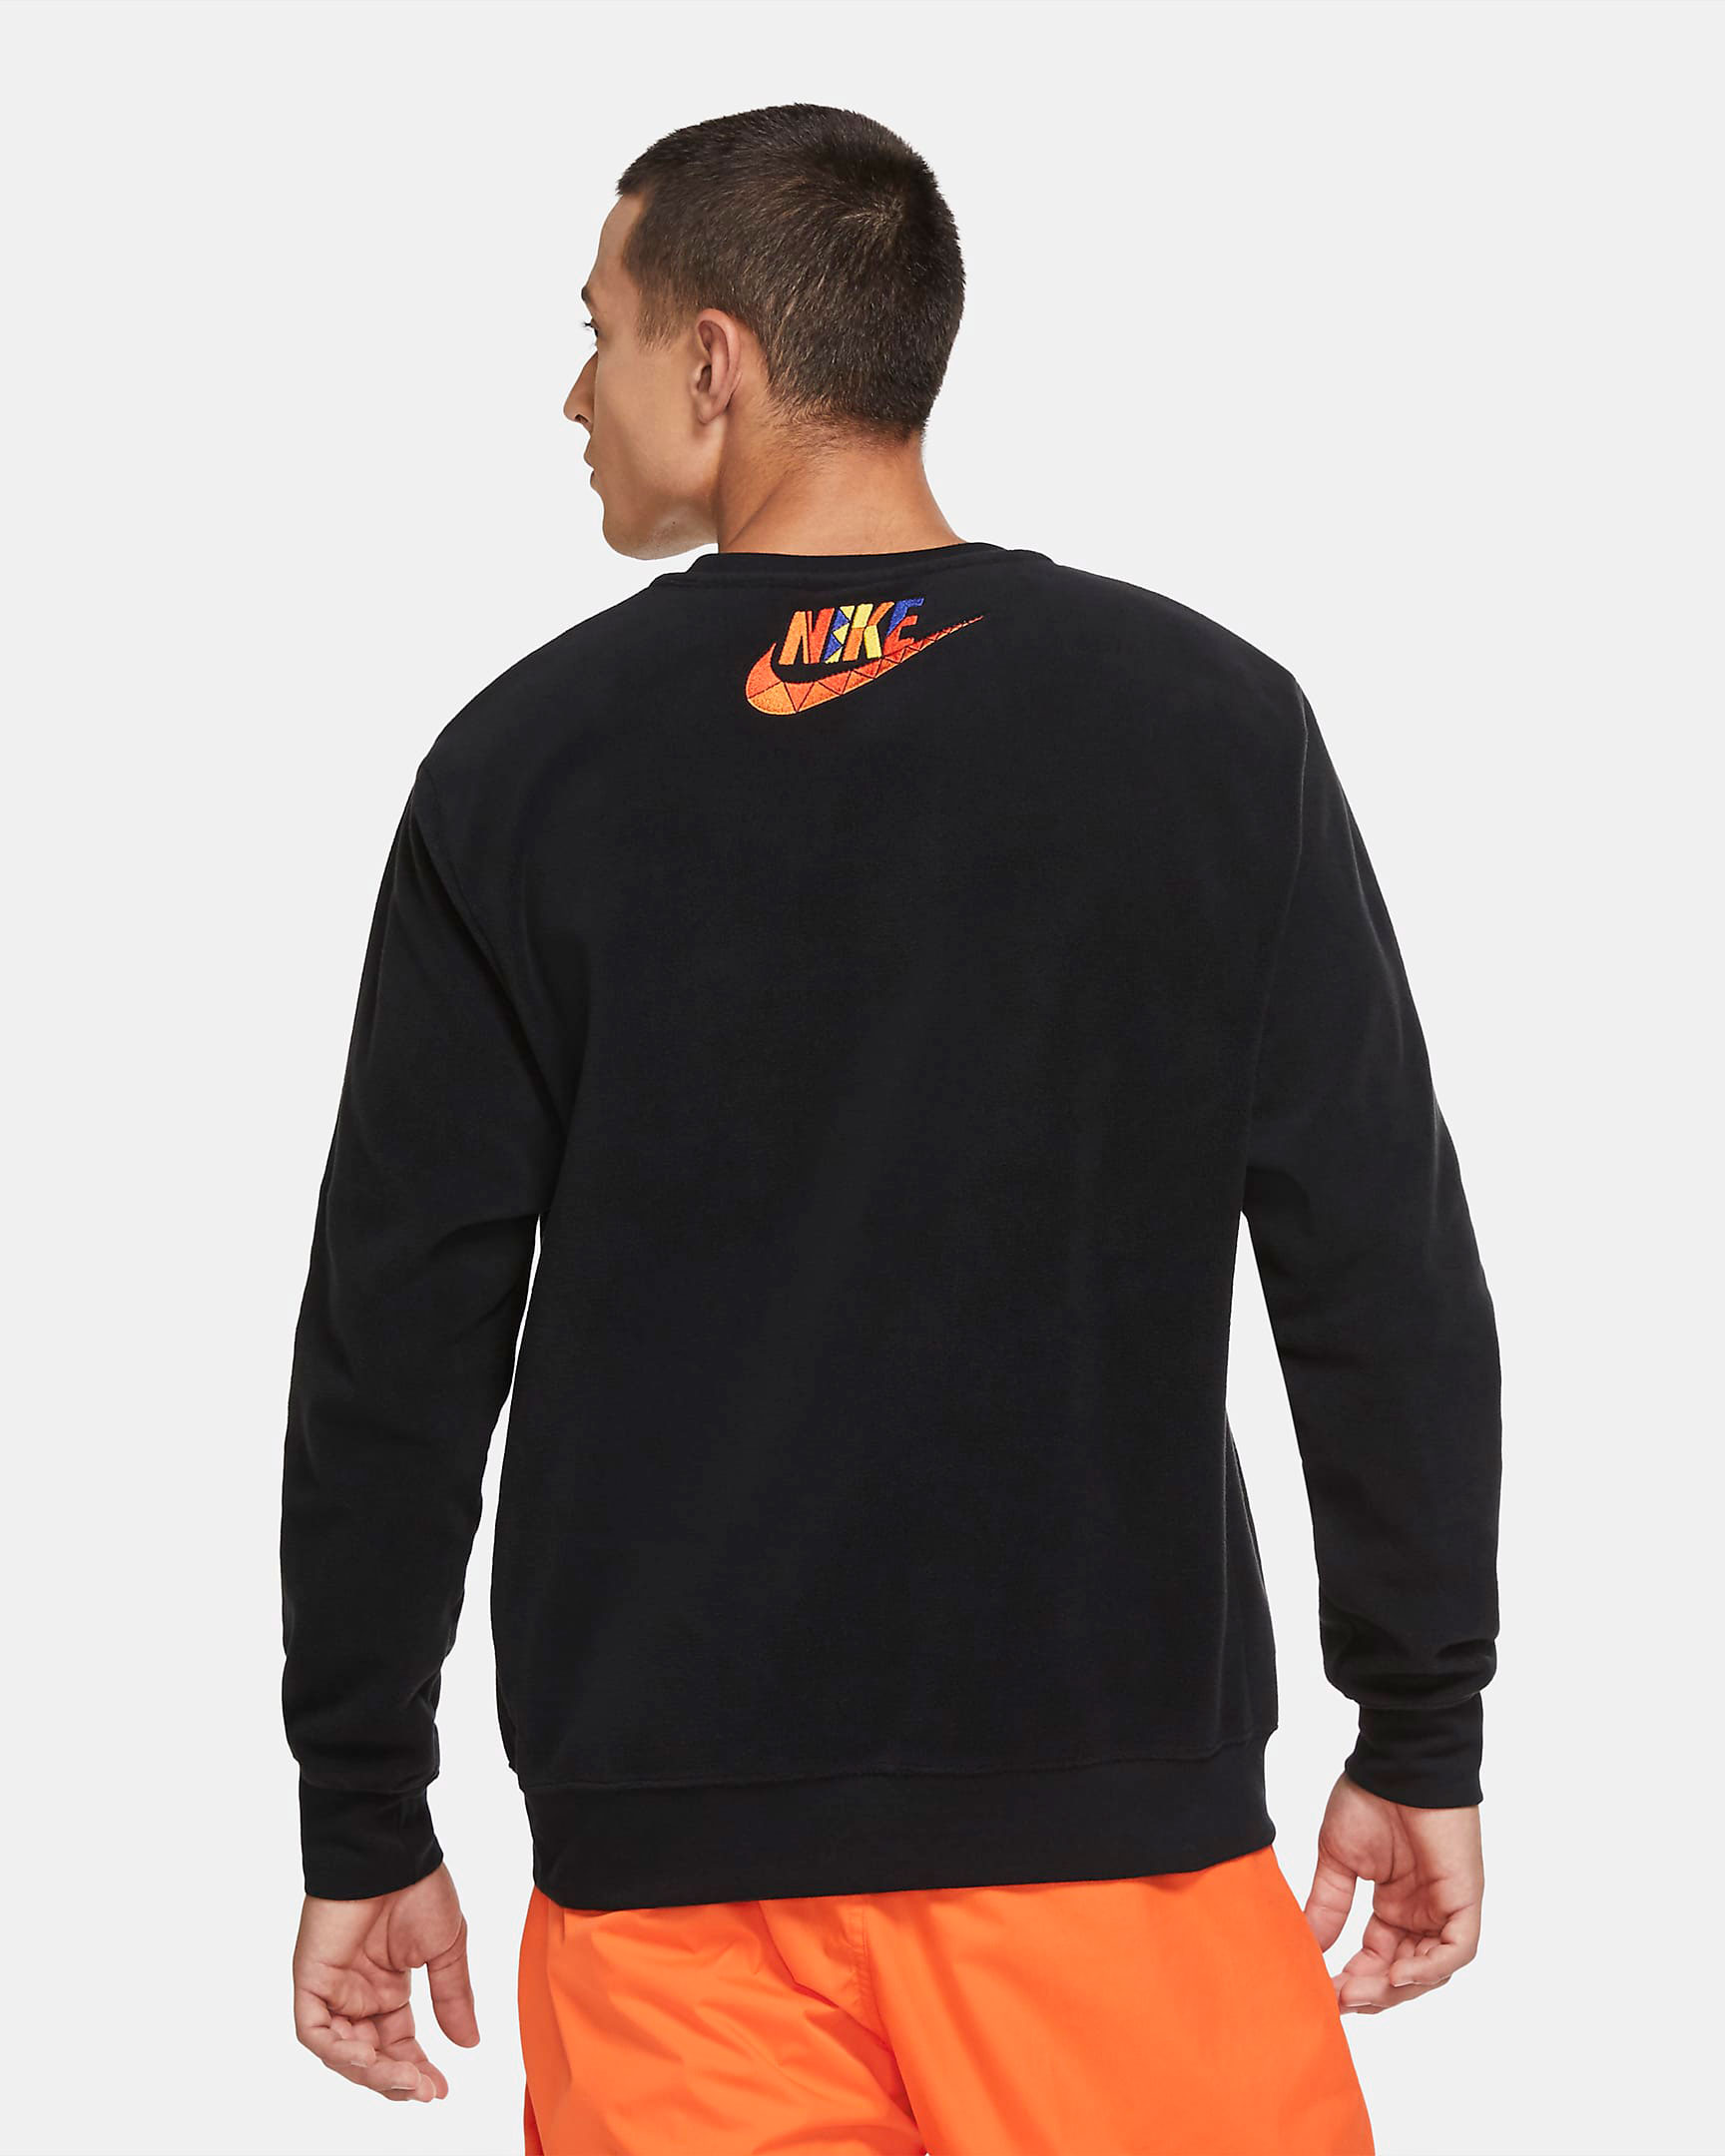 nike-urban-jungle-live-together-play-together-crew-sweatshirt-2